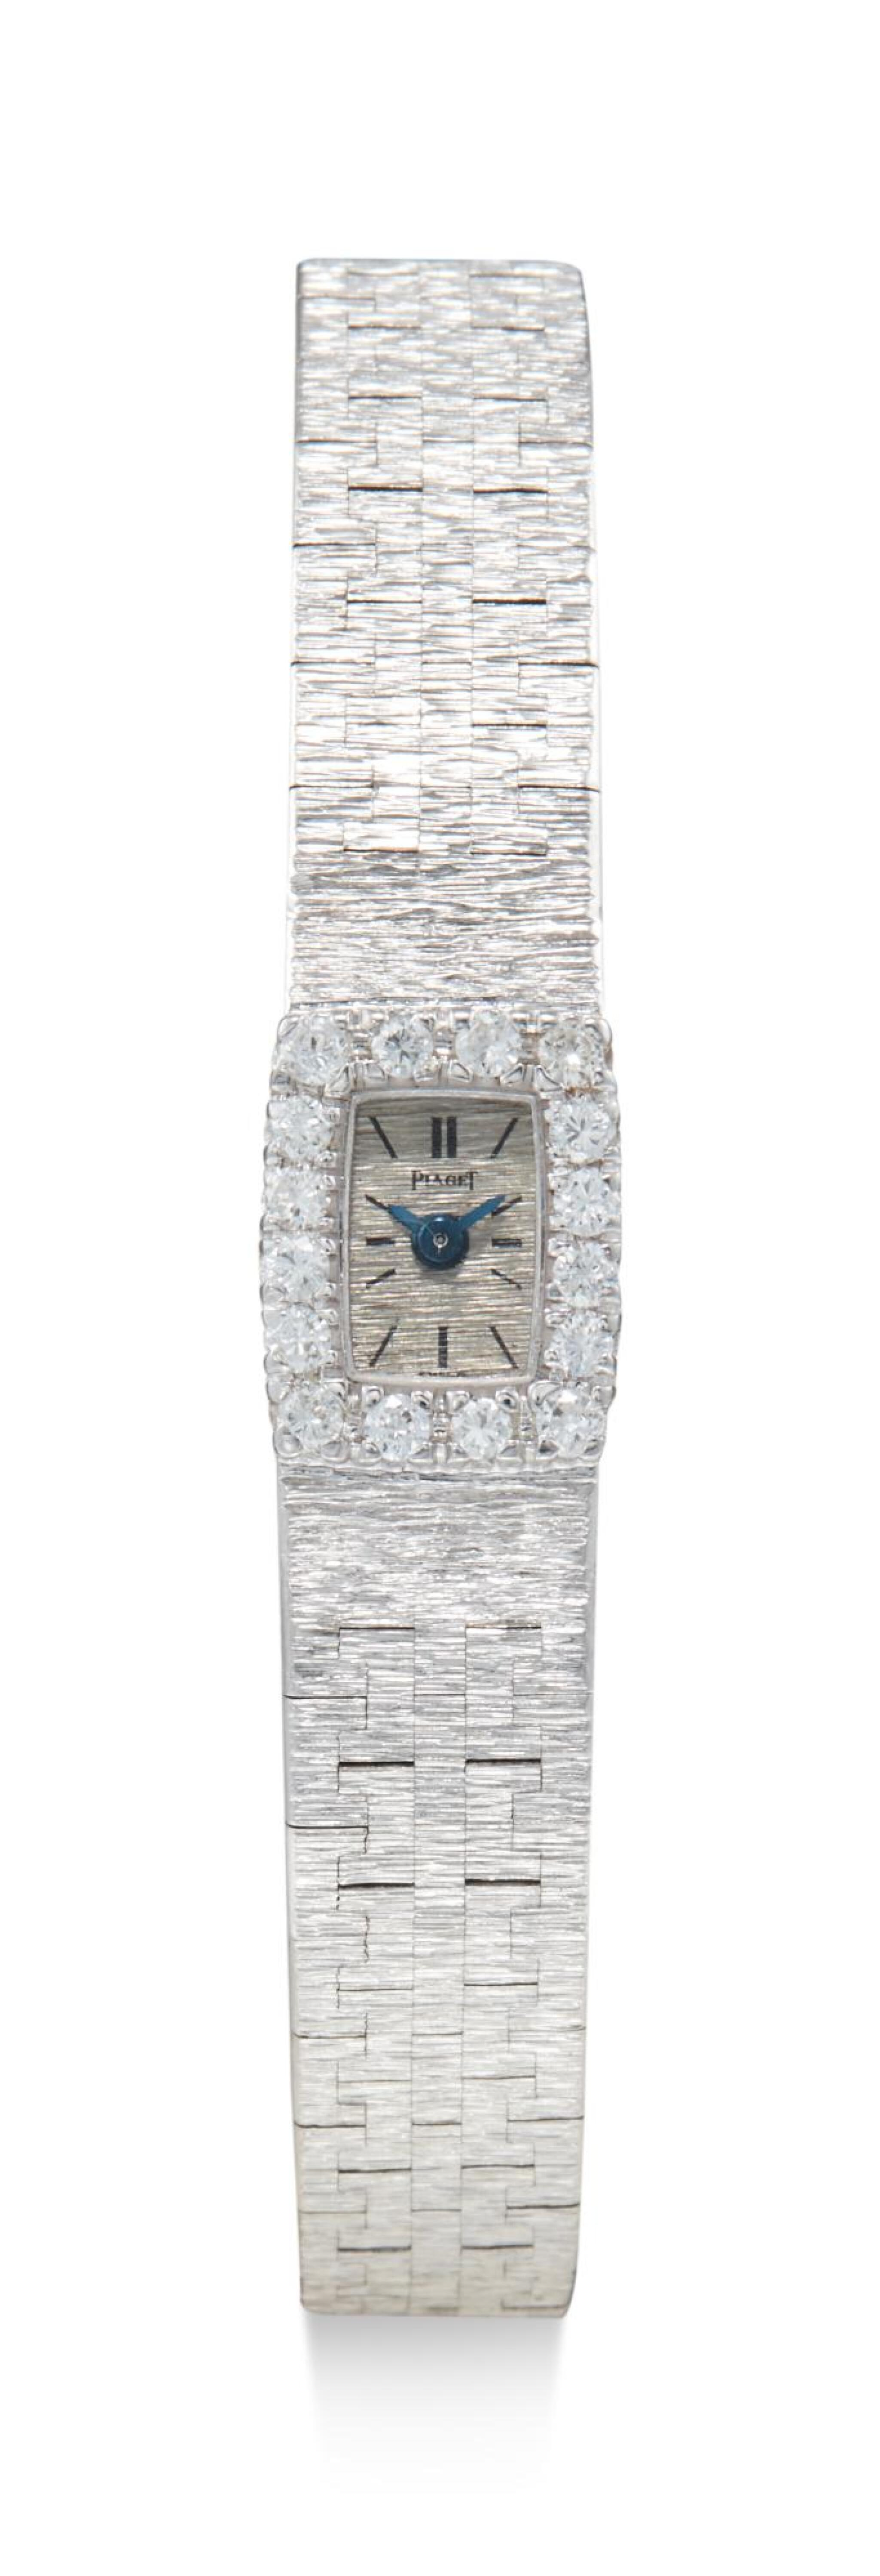 View full screen - View 1 of Lot 8091. PIAGET | REFERENCE 1308 A 6, A WHITE GOLD AND DIAMOND-SET BRACELET WATCH, CIRCA 1960.